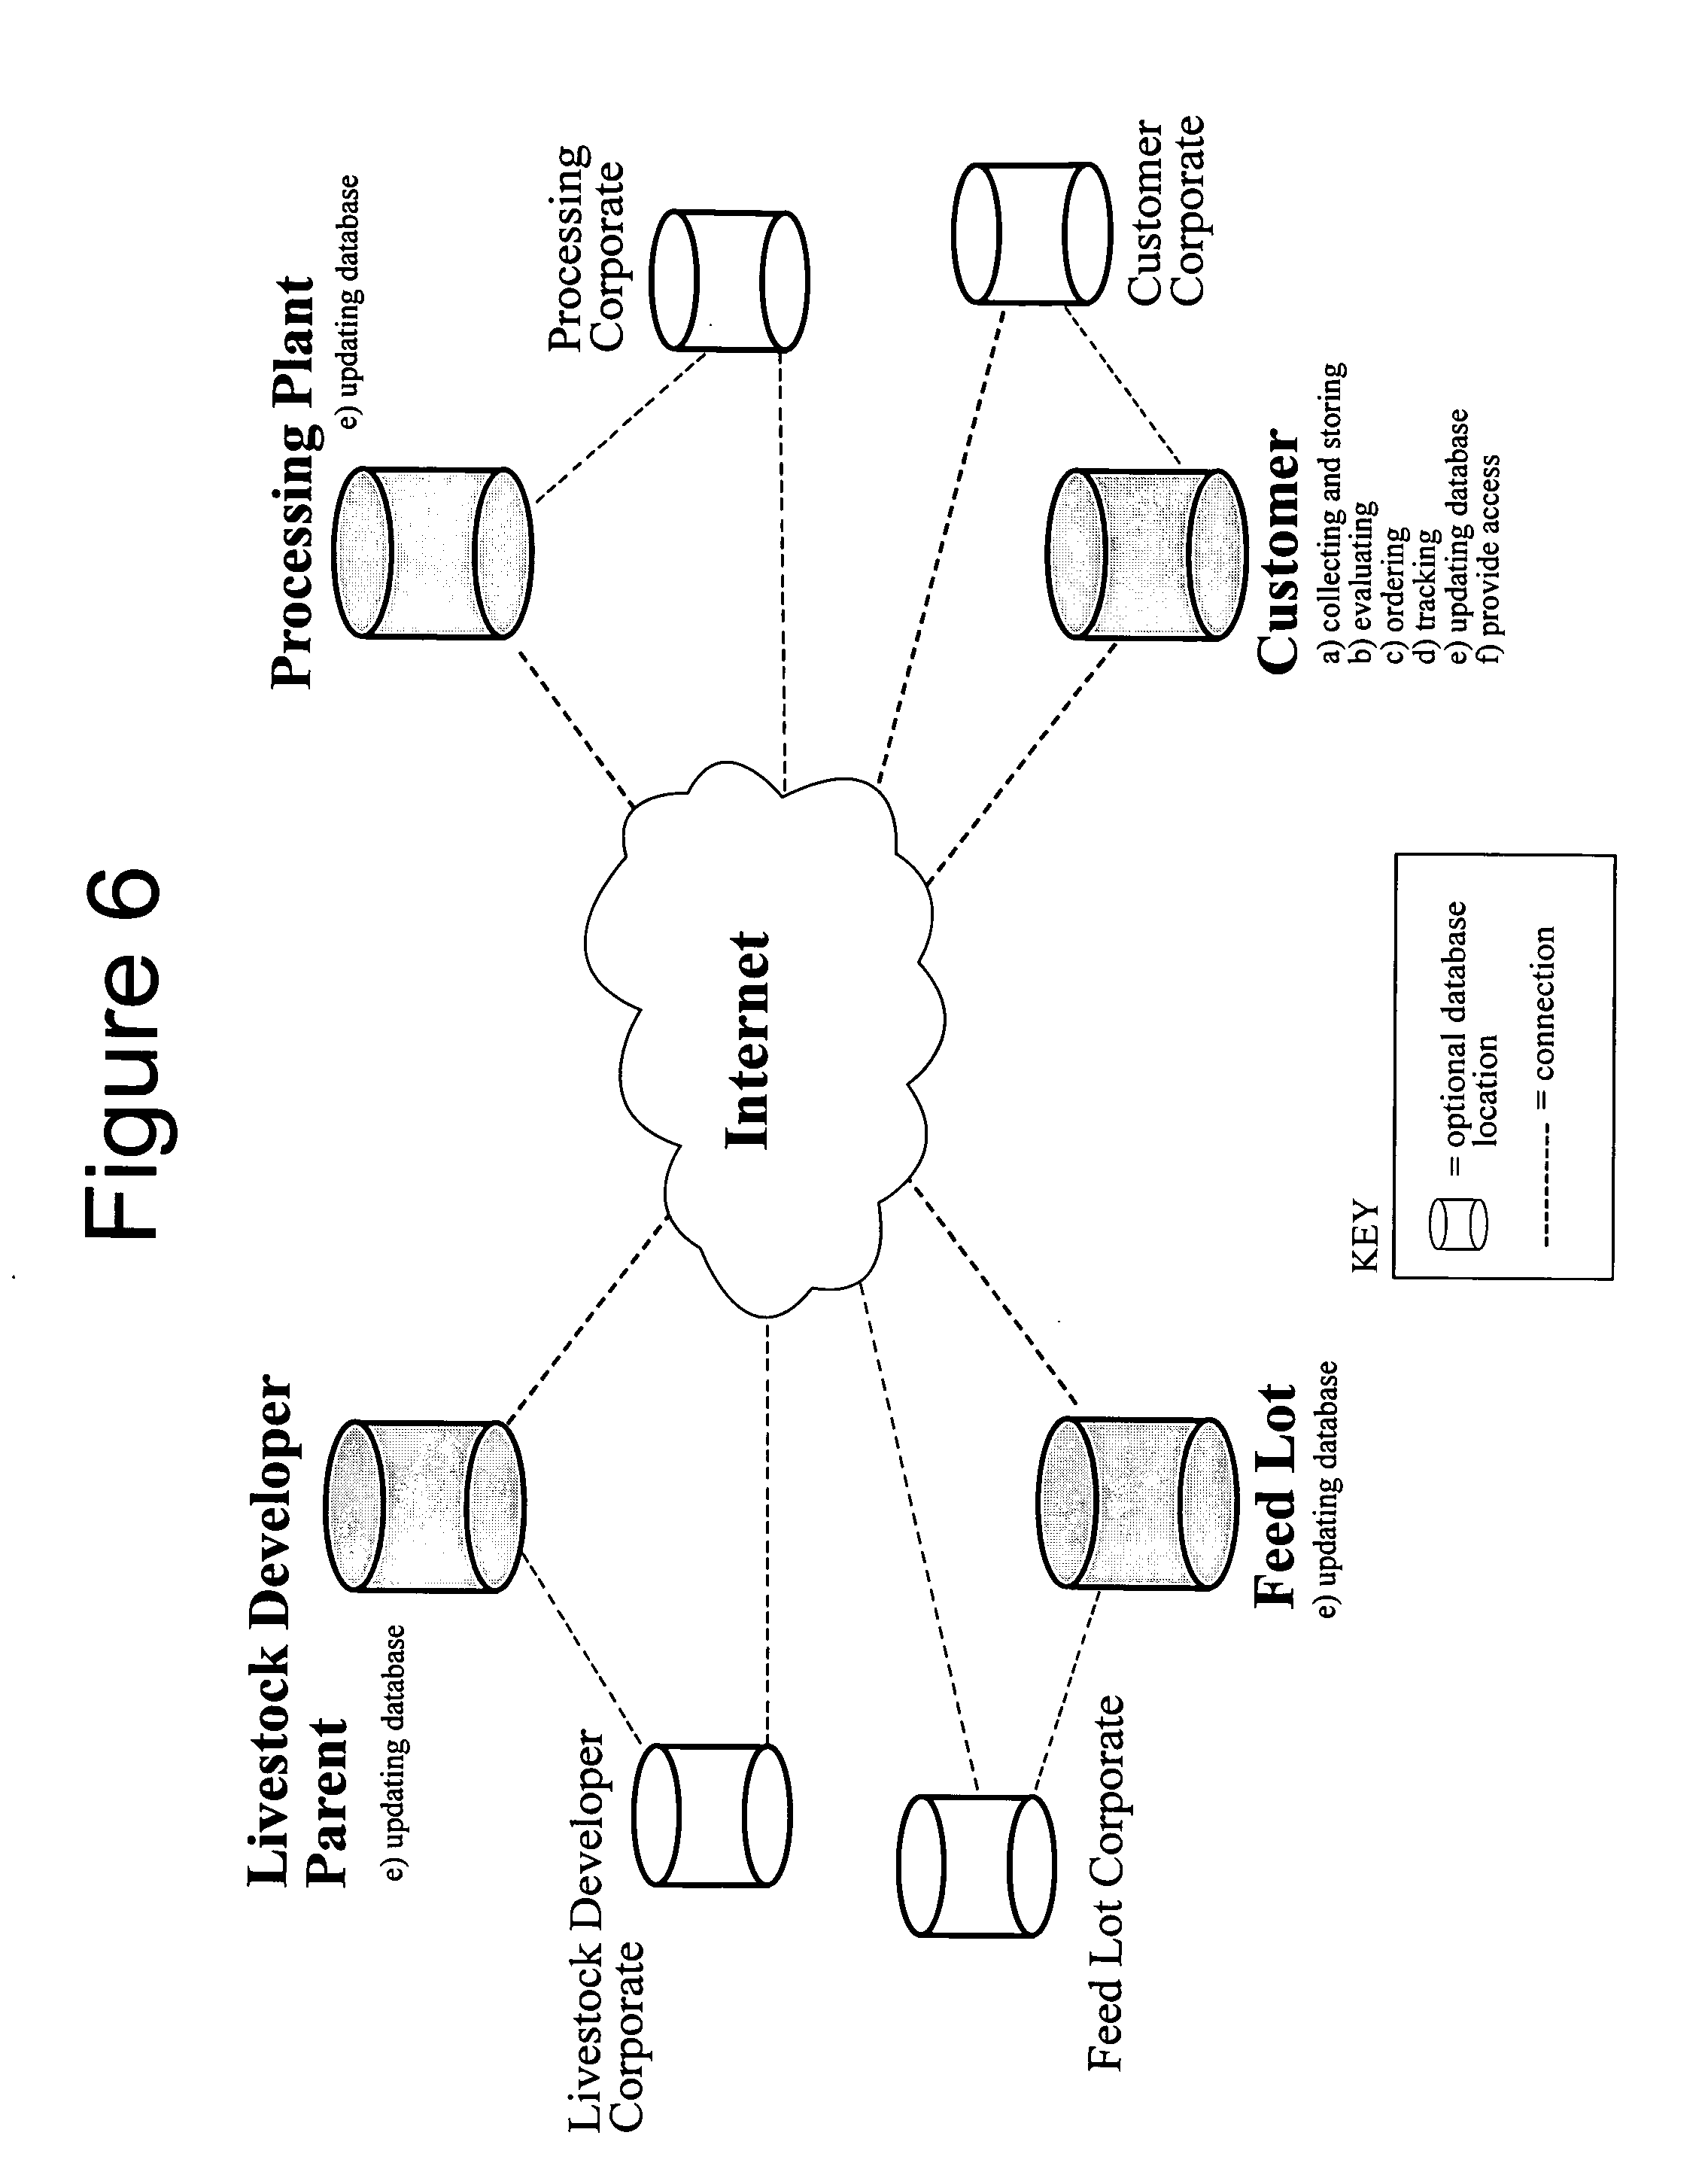 US20060038010A1 - Livestock inventory tracking system and